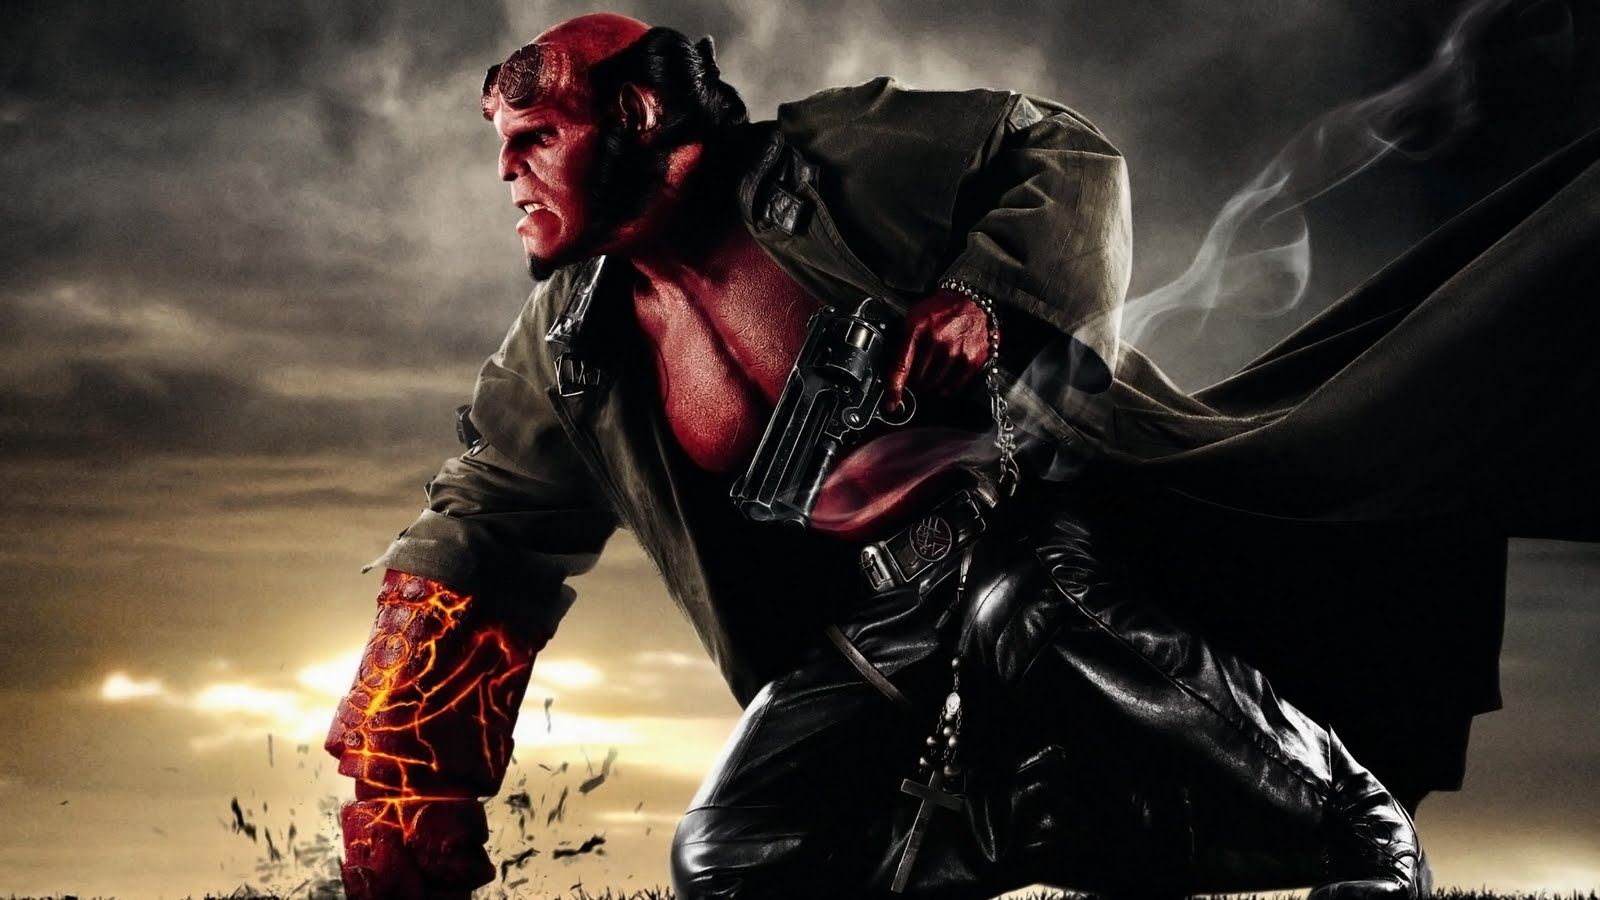 David Harbour On Why Hellboy Is His Favorite Superhero